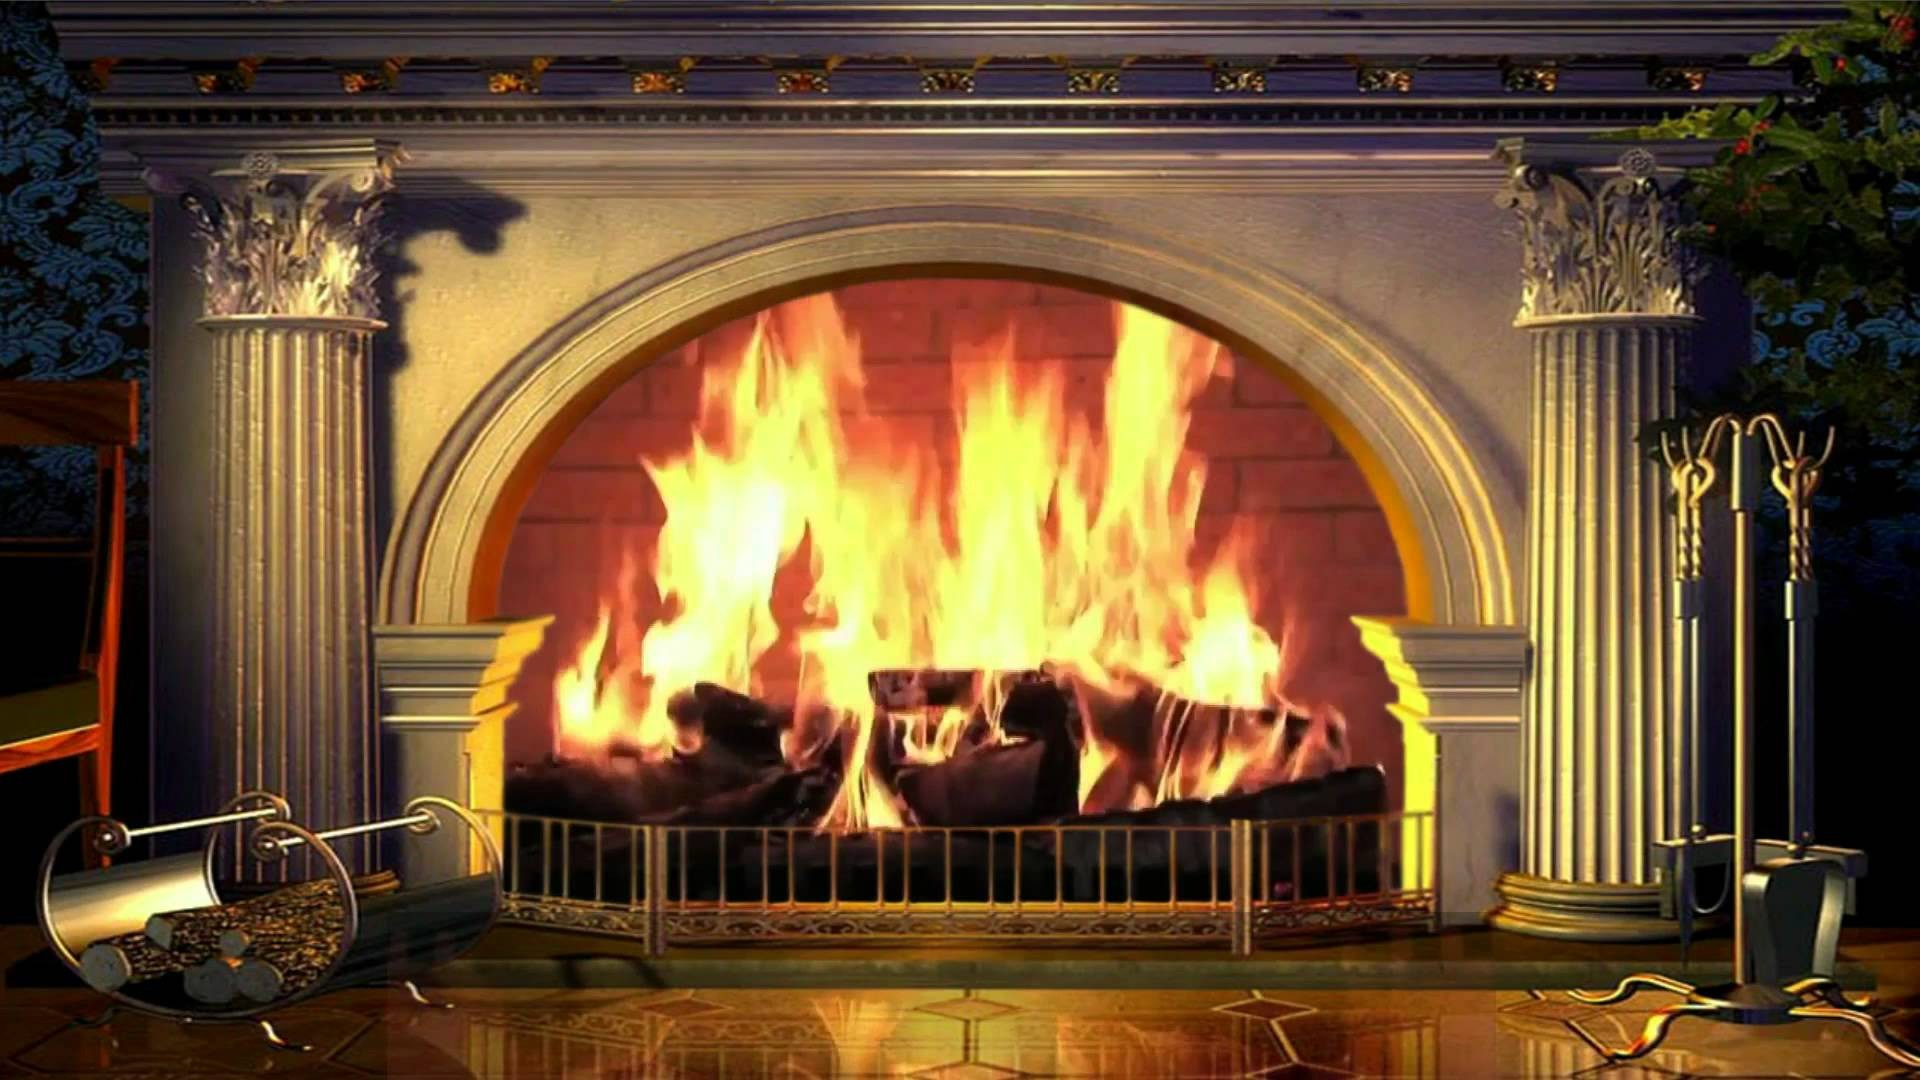 Free Fireplace Wallpaper: Fireplace Background ·① Download Free Beautiful Full HD